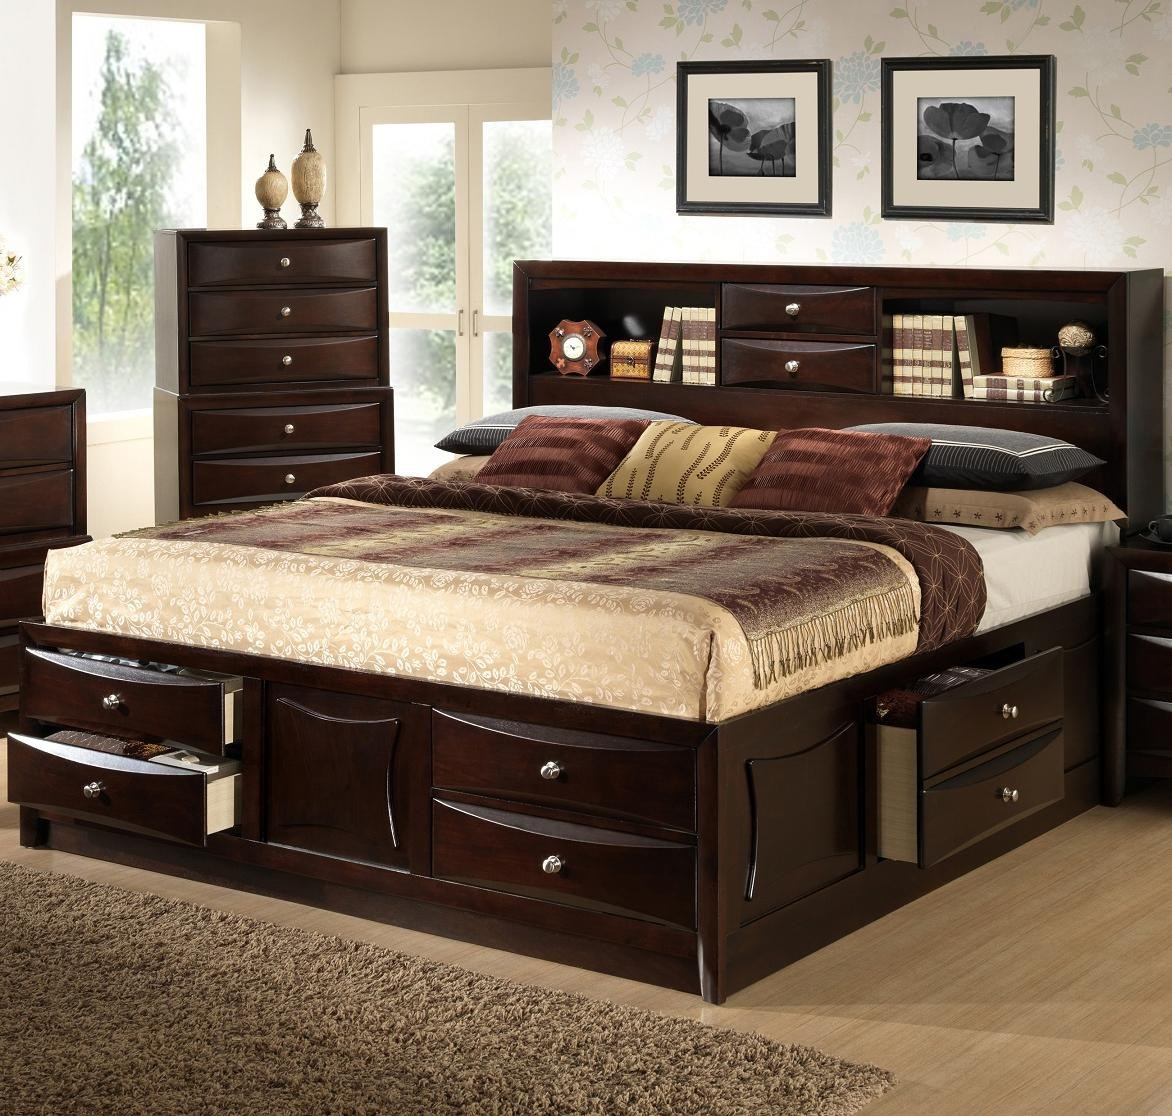 lifestyle c0172 king storage bed w bookcase headboard